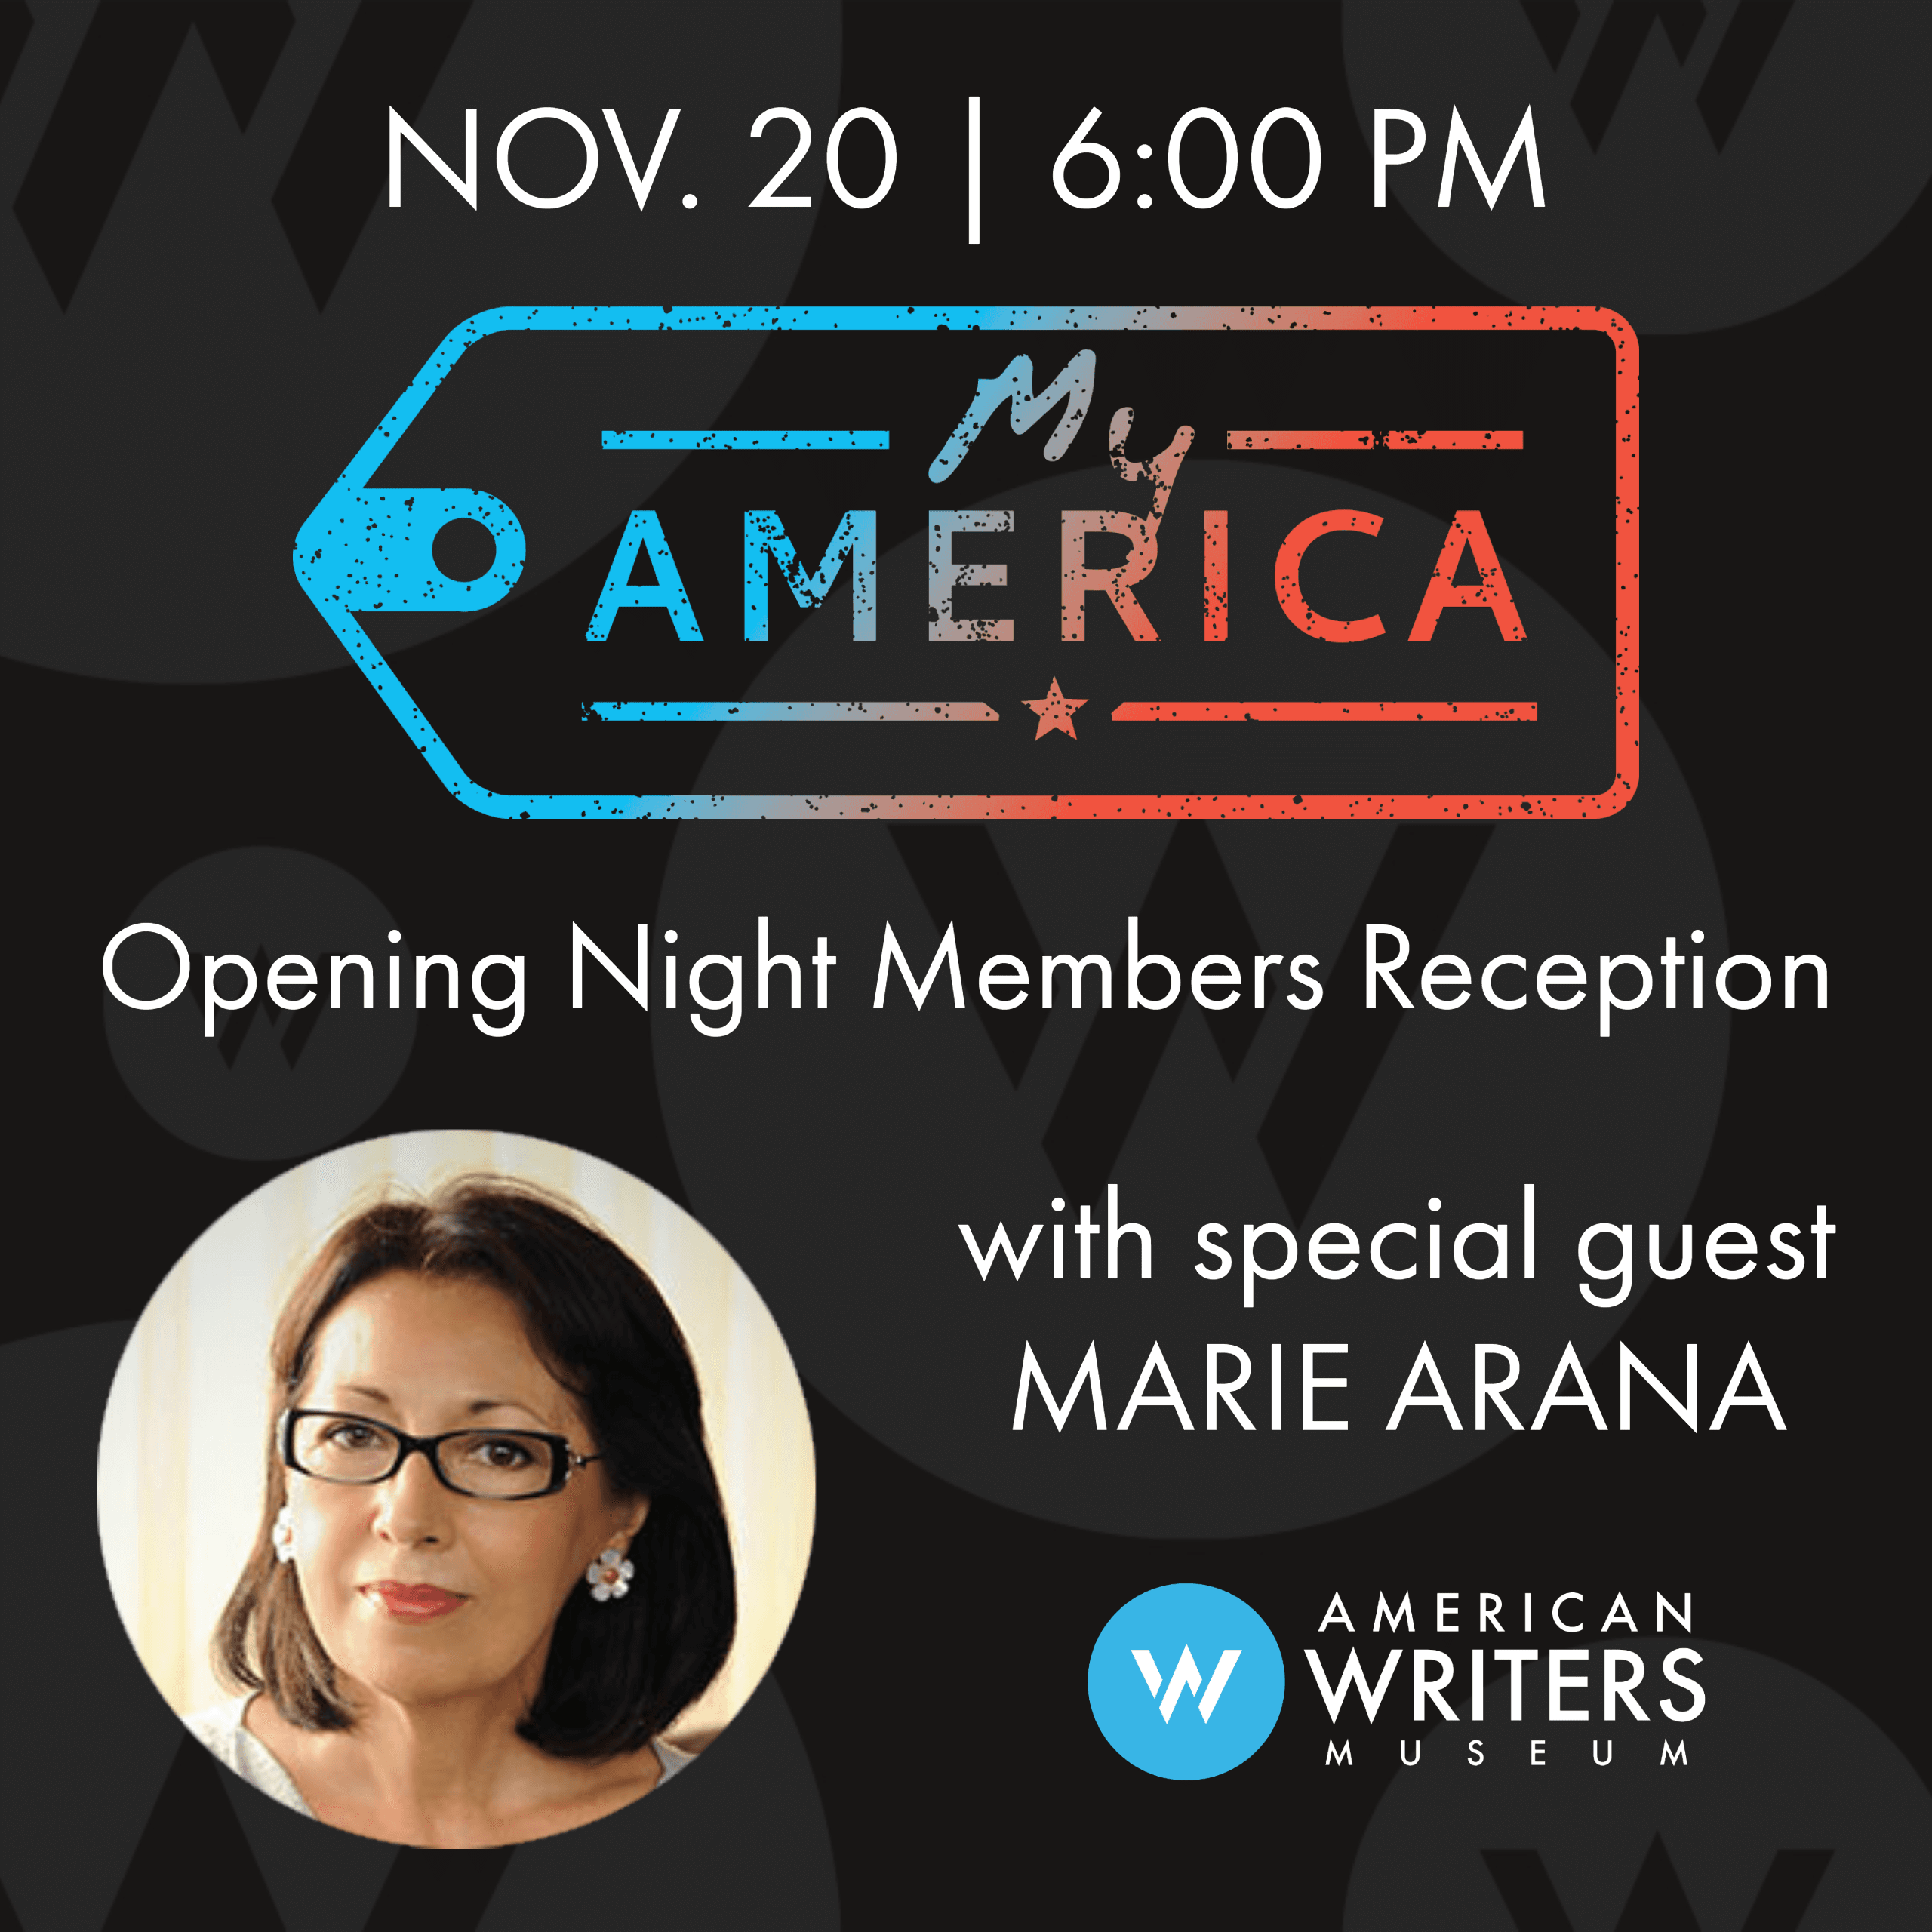 My America exhibit opening and member reception on November 20 at the American Writers Museum